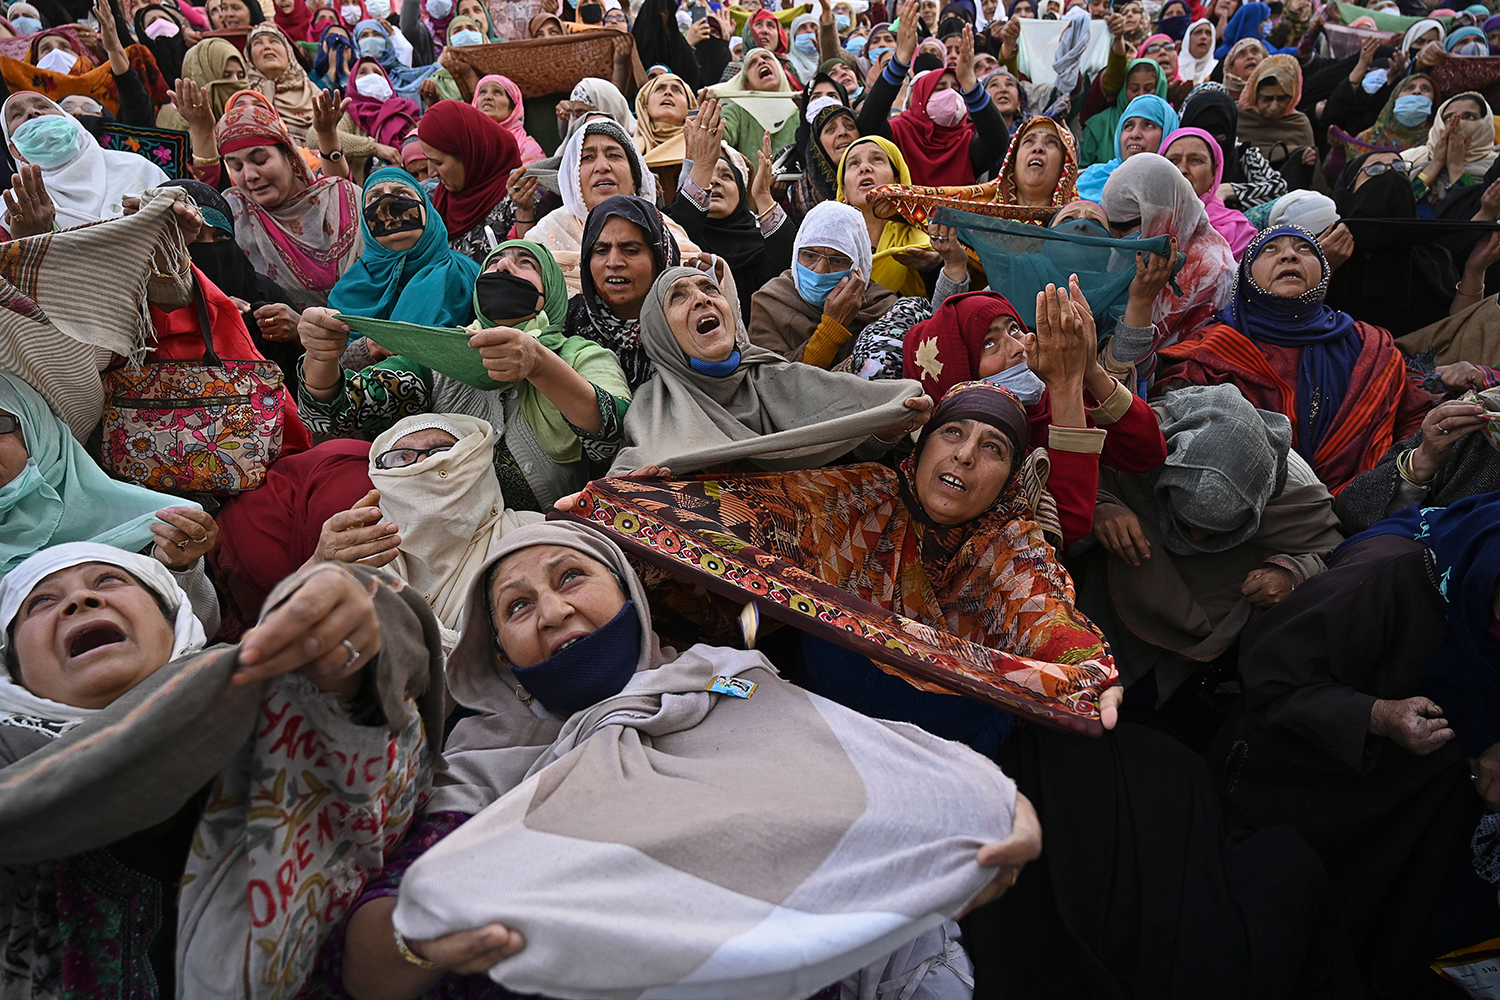 Muslim devotees react as a priest displays a relic believed to be a hair from the beard of Prophet Mohammed during the last Friday of Eid Milad un Nabi, which marks the birth anniversary of the prophet, at the Hazratbal Shrine in Srinagar, an Indian territory in Jammu and Kashmir, on Nov. 6. TAUSEEF MUSTAFA/AFP via Getty Images